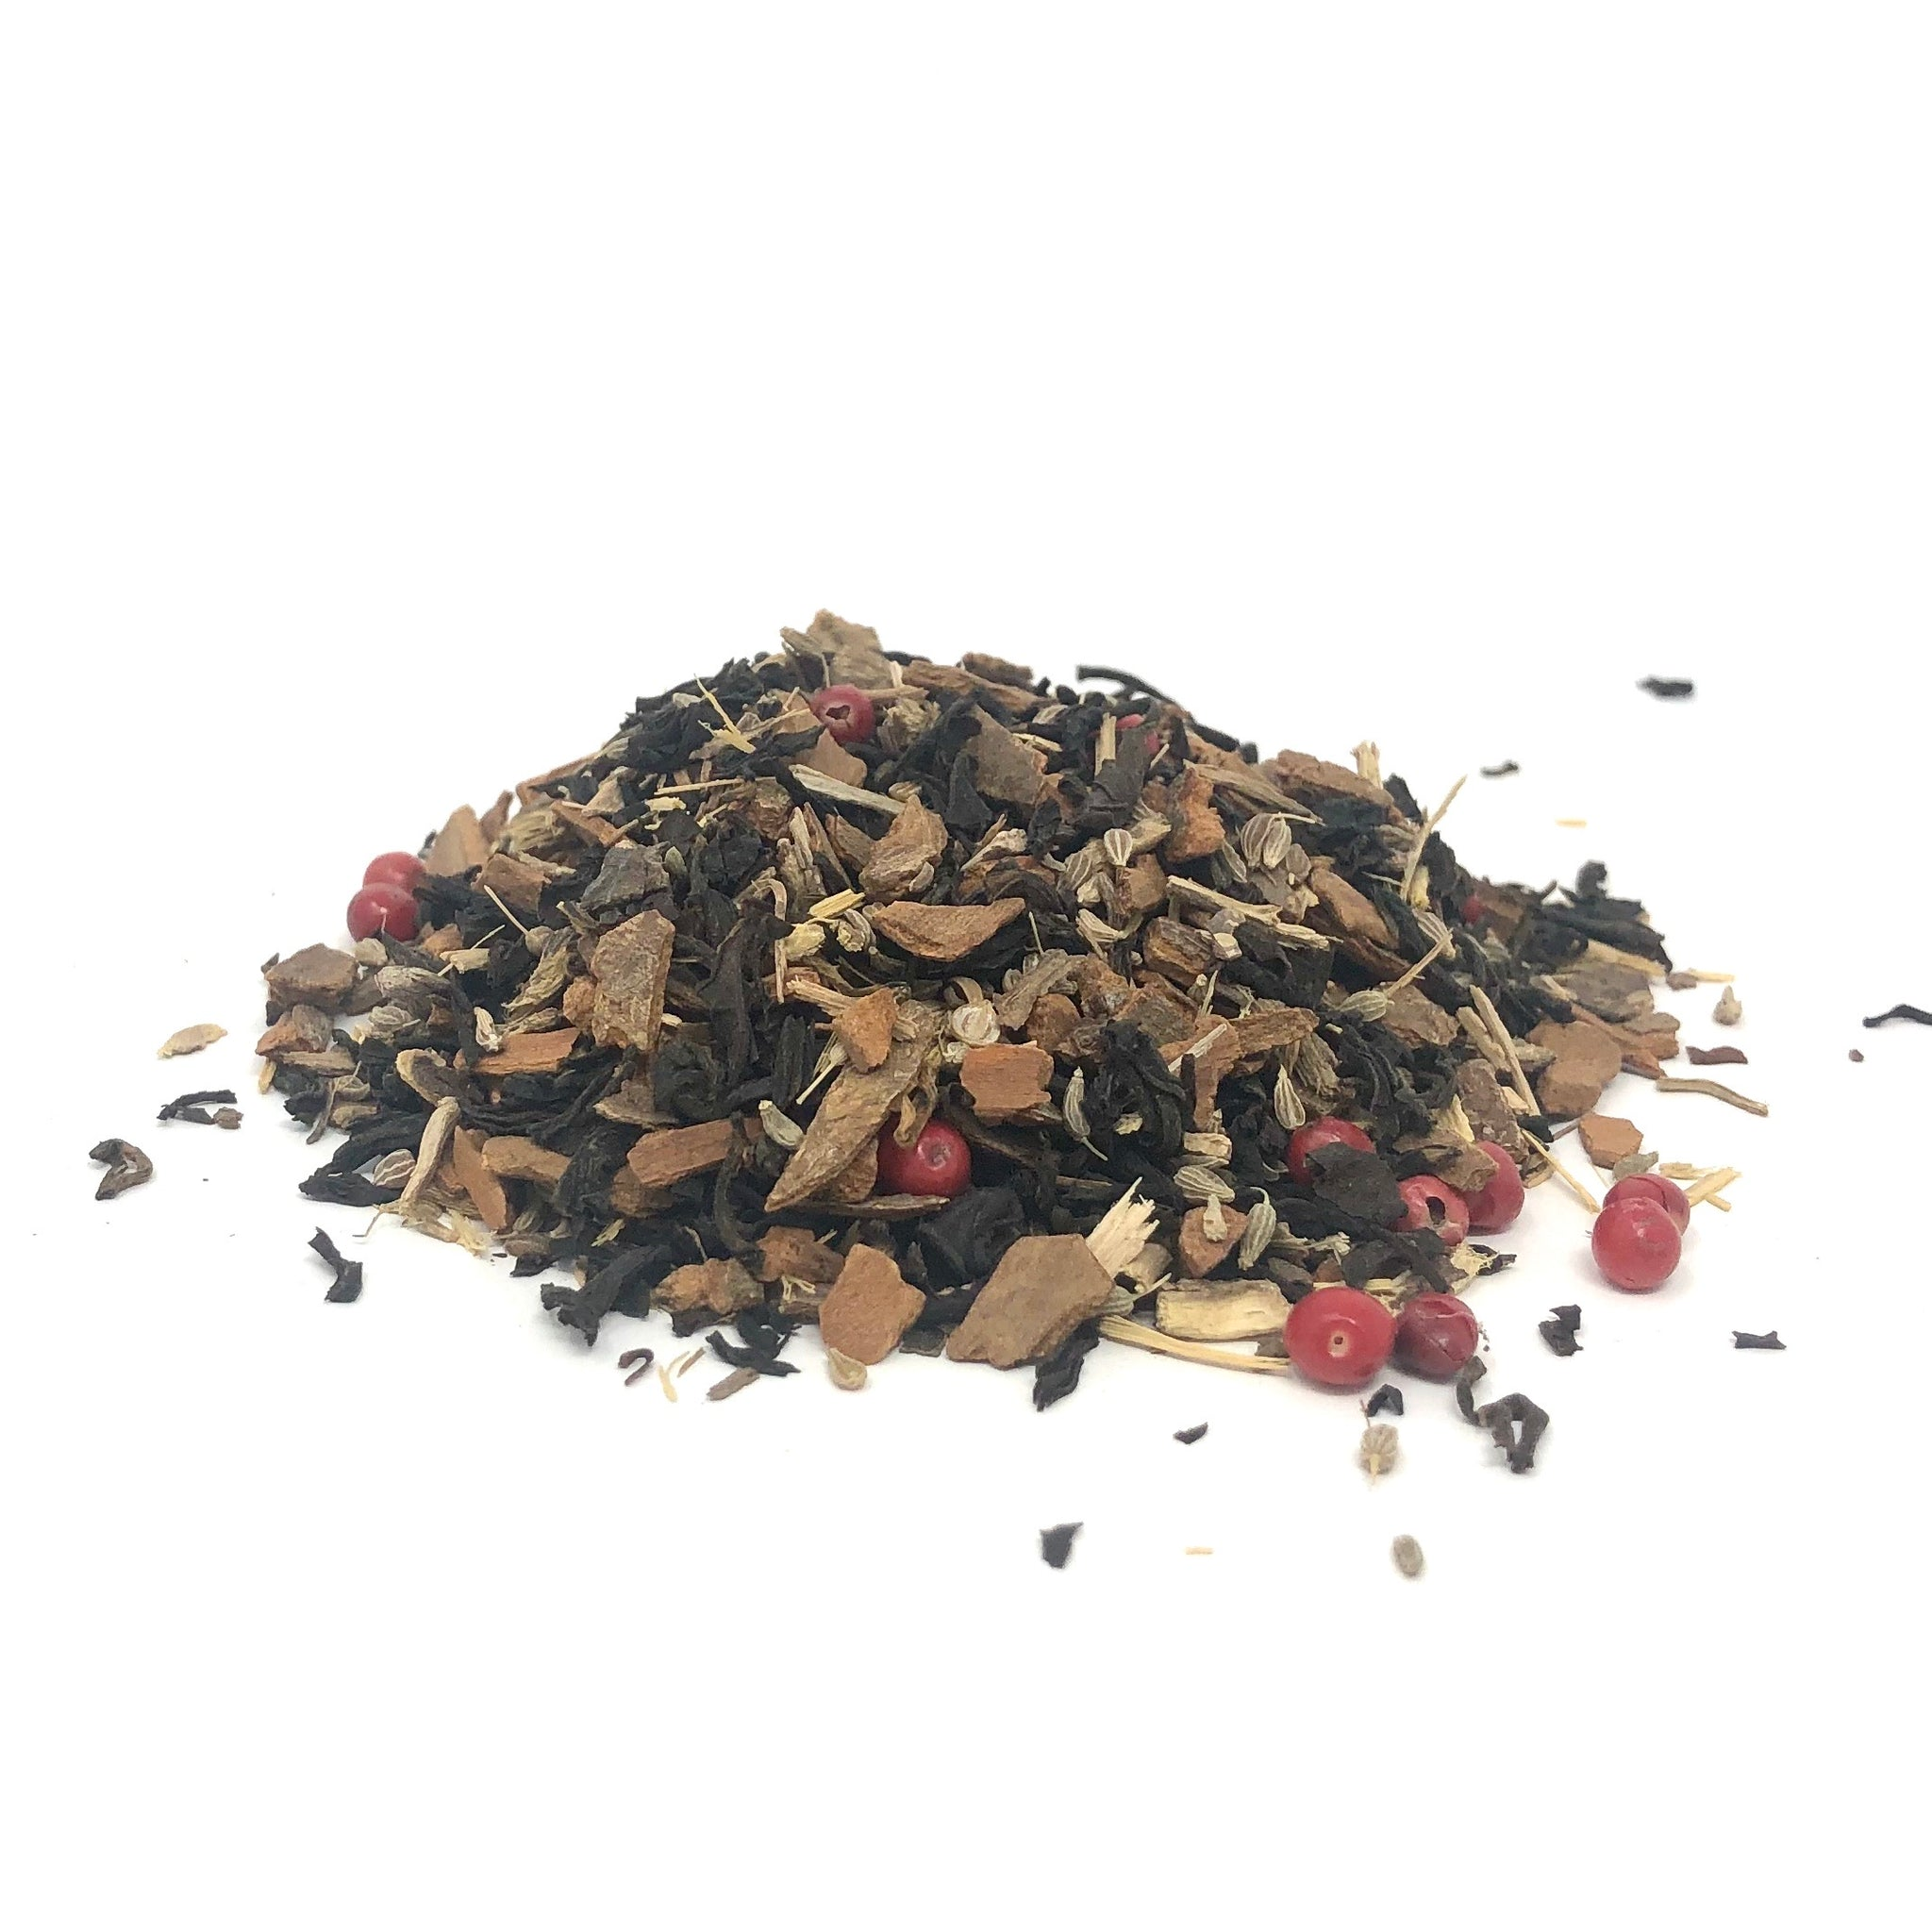 Thunderstorm (Smoked Black Tea Blend)